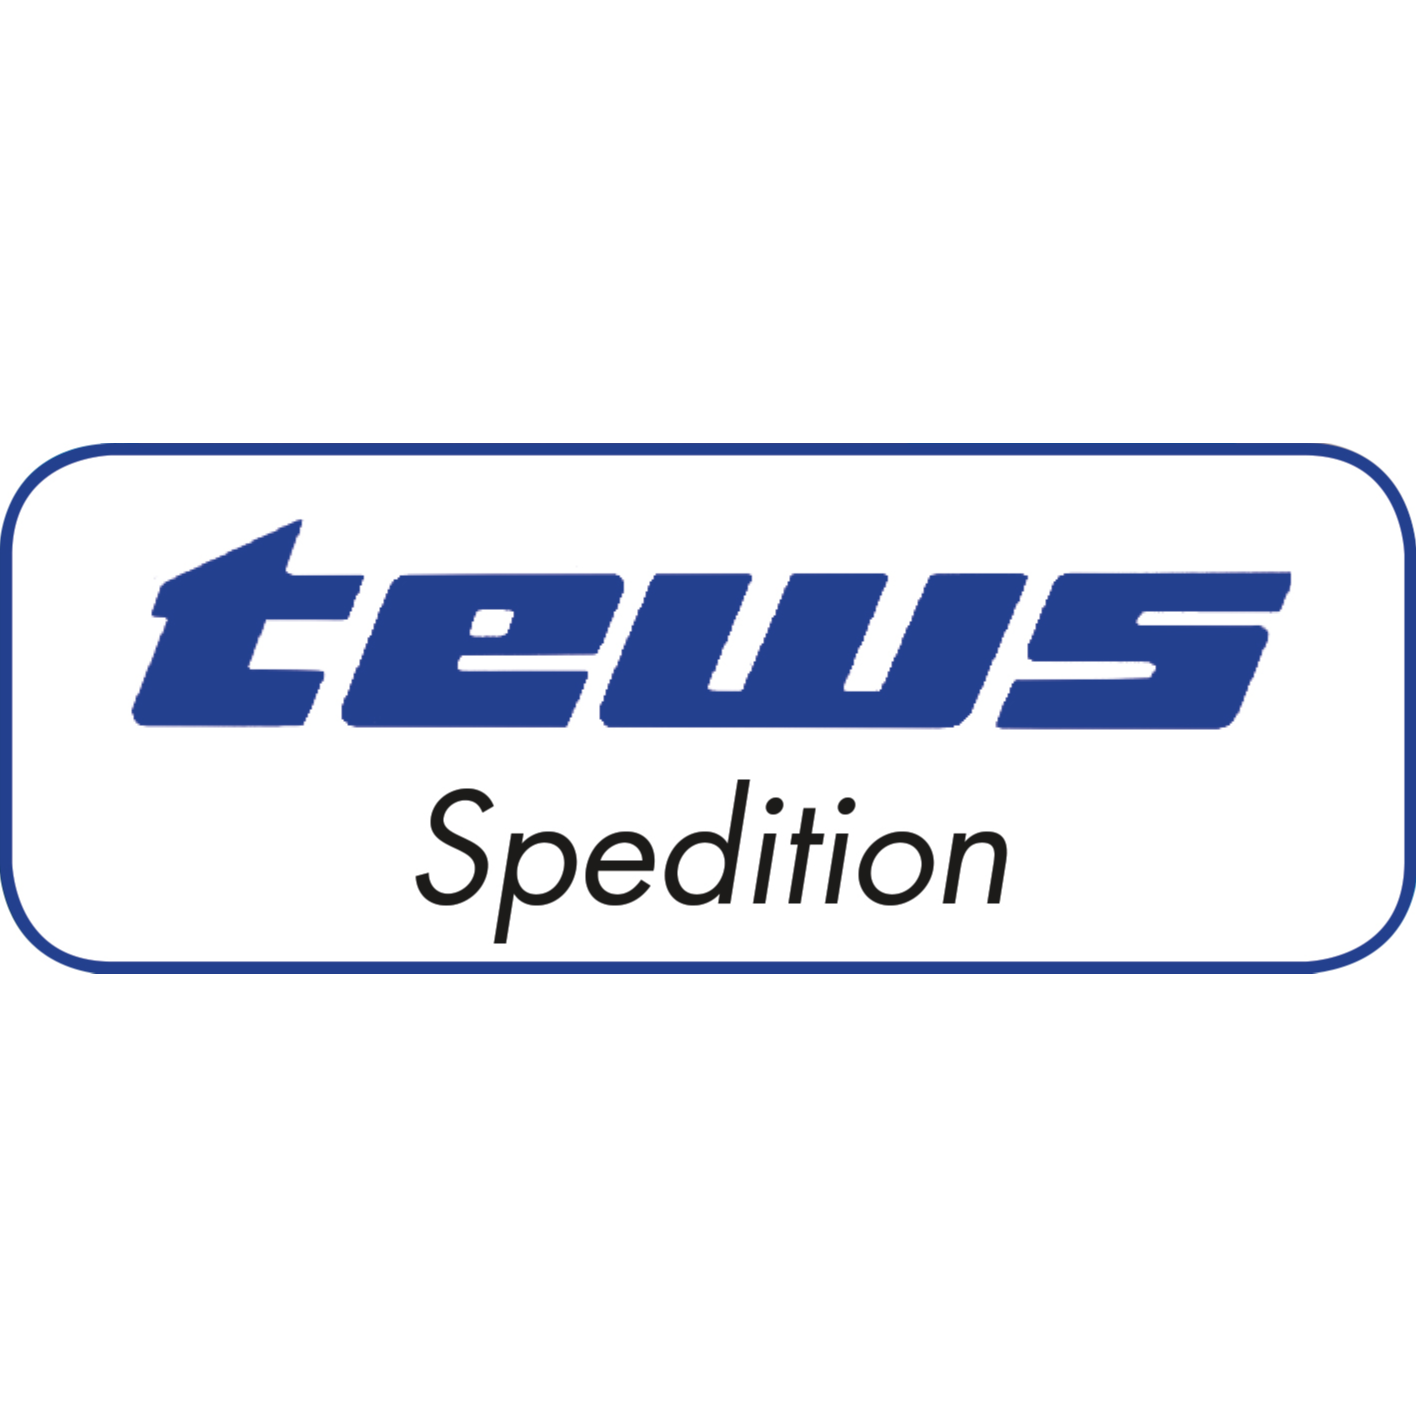 Tews GmbH & Co. KG Spedition